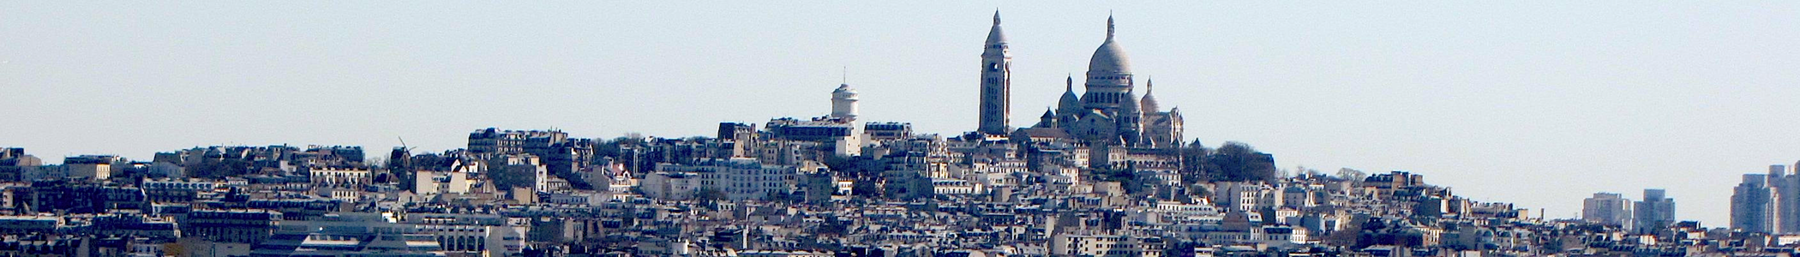 The hill of Montmartre as seen from the south